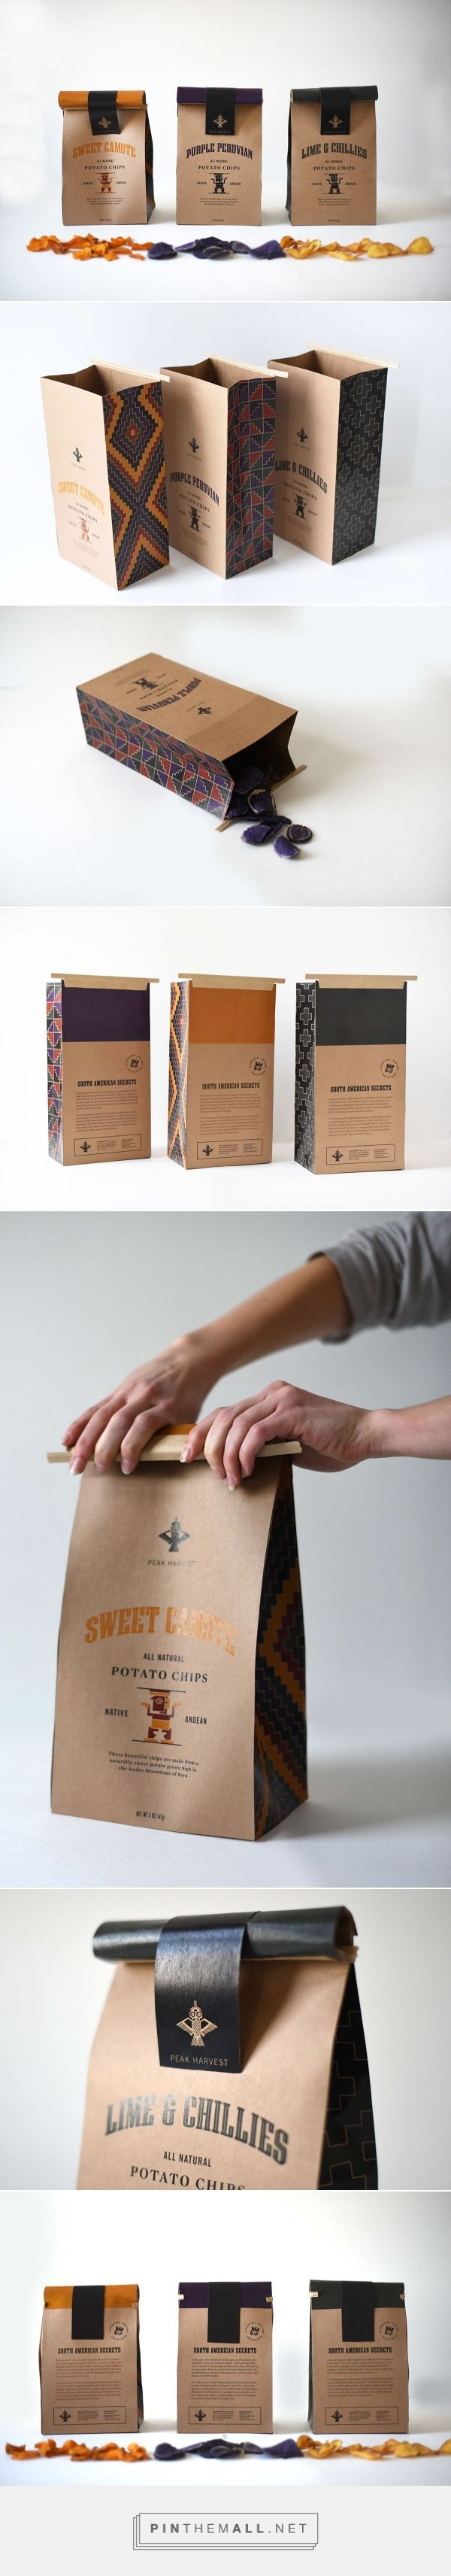 Packaging Pick Of The Day Branding, illustration and packaging for Potato Chips on Behance by Josie Mazsk Charleston, SC curated by Packaging Diva PD. Redesigned chip bags are made from 40% recycled natural kraft paper and lined with PLA, a renewable and compostable film made from corn.